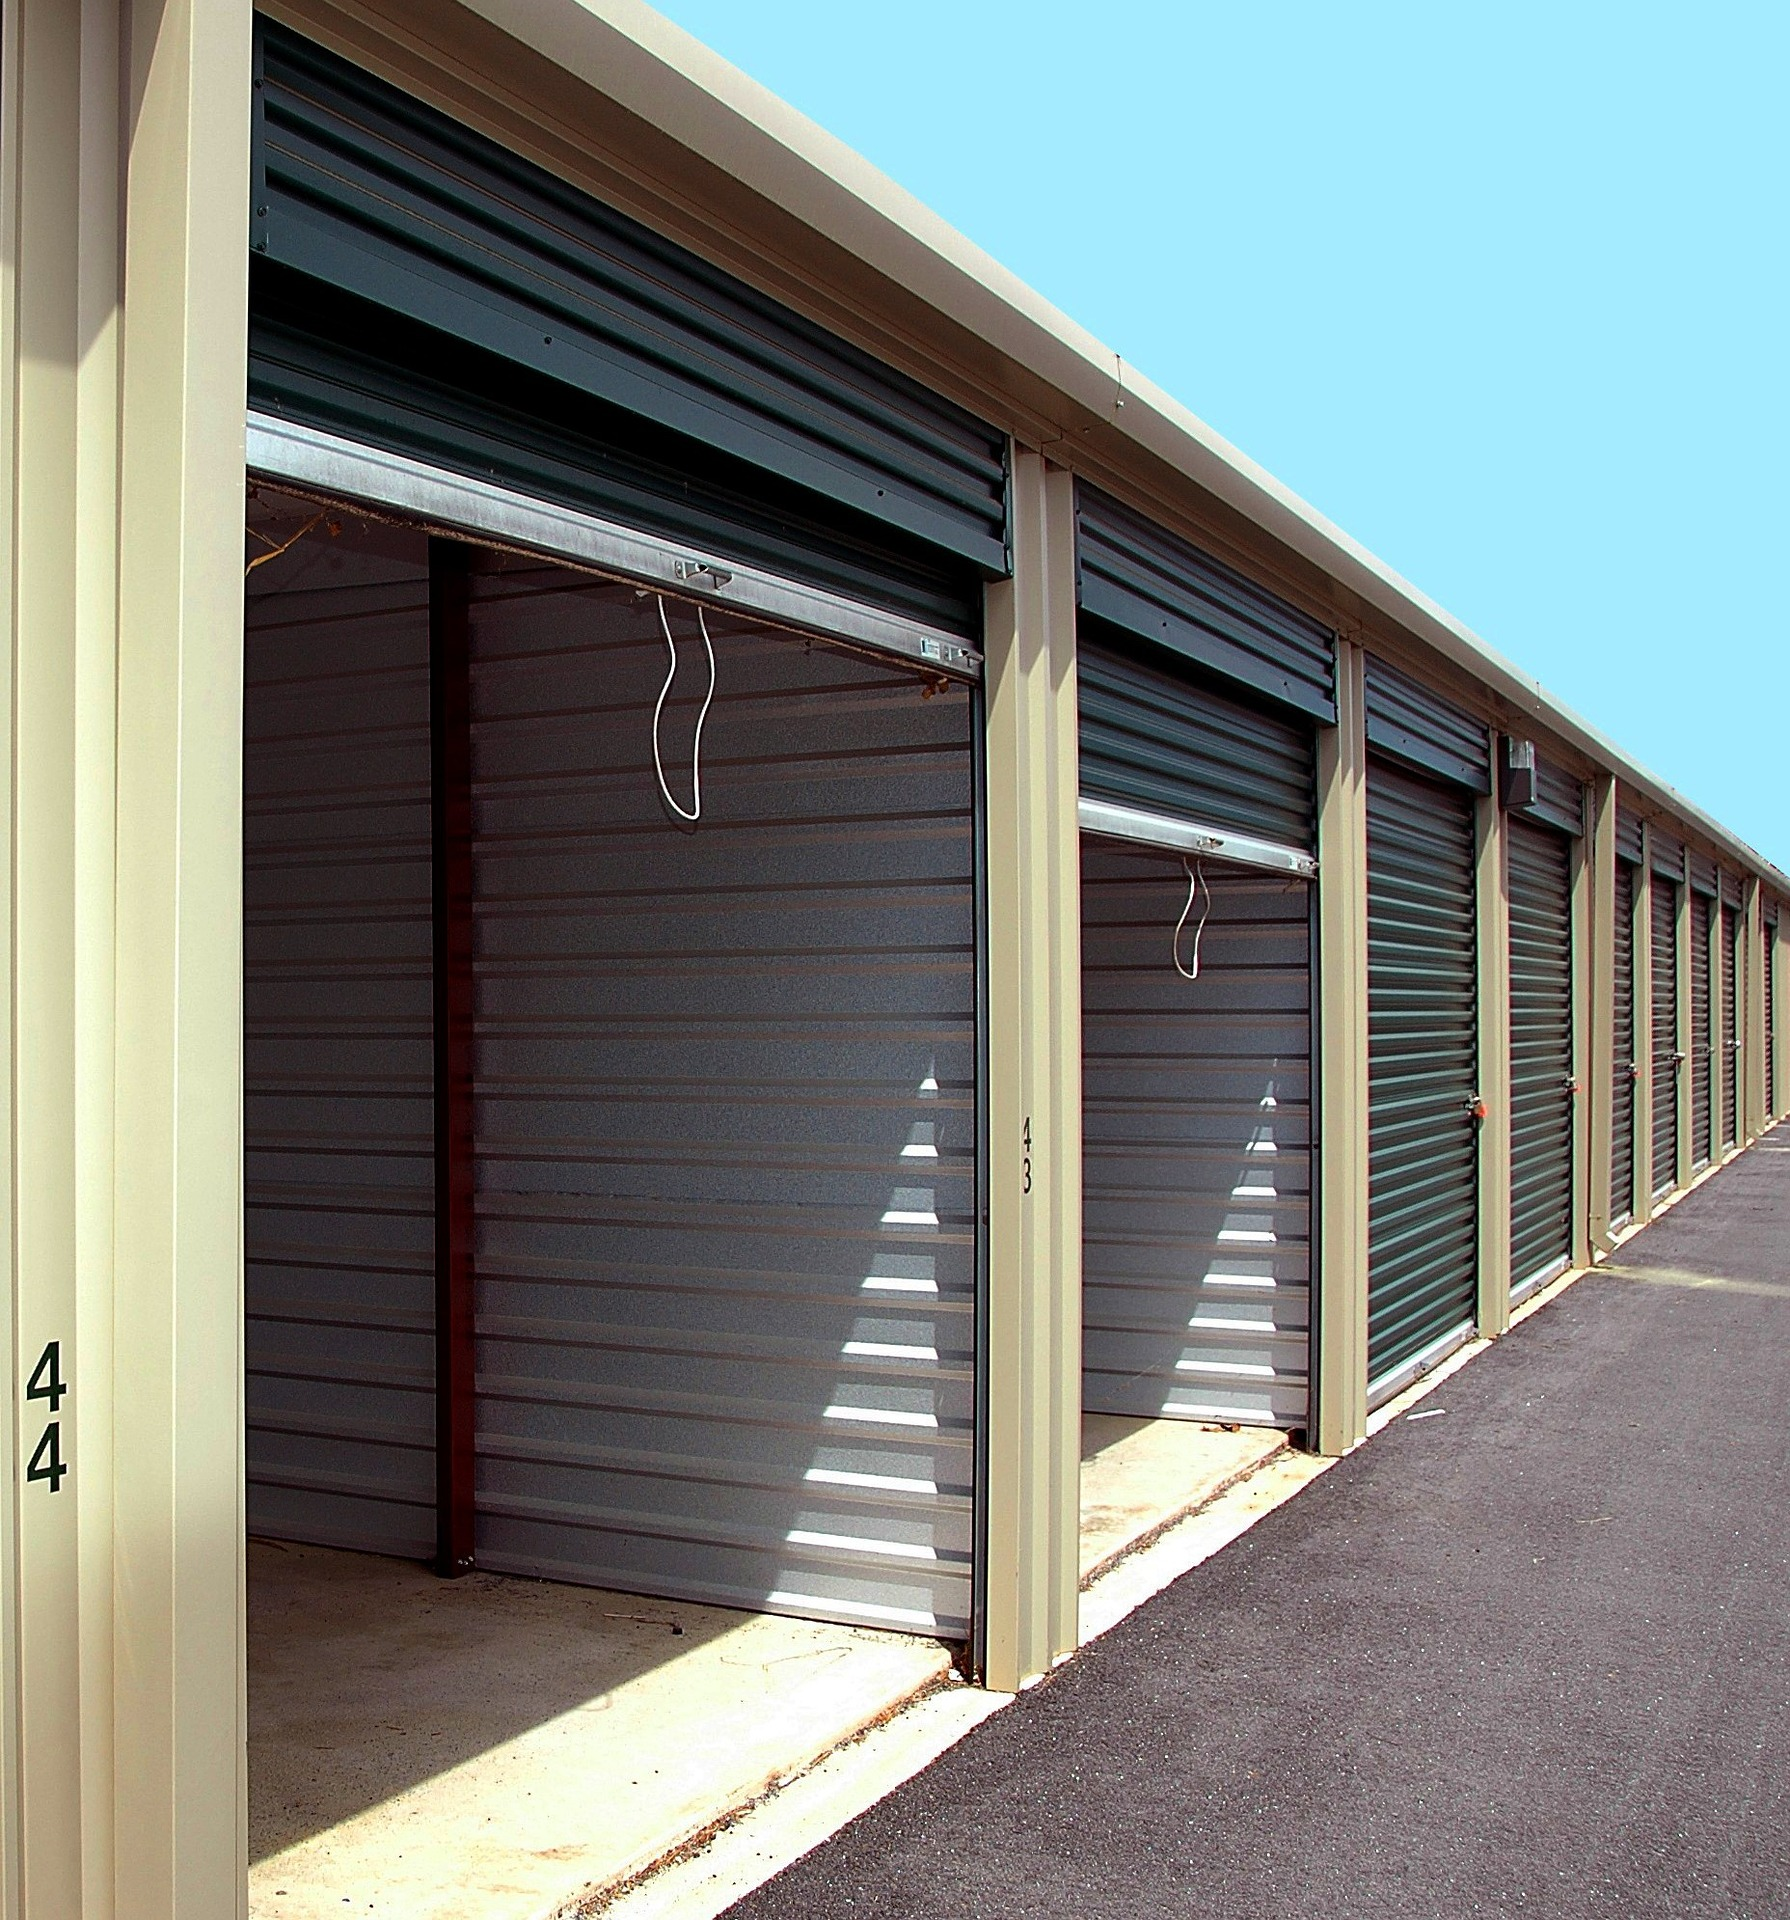 storage-warehouse-2089775_1920 (1)